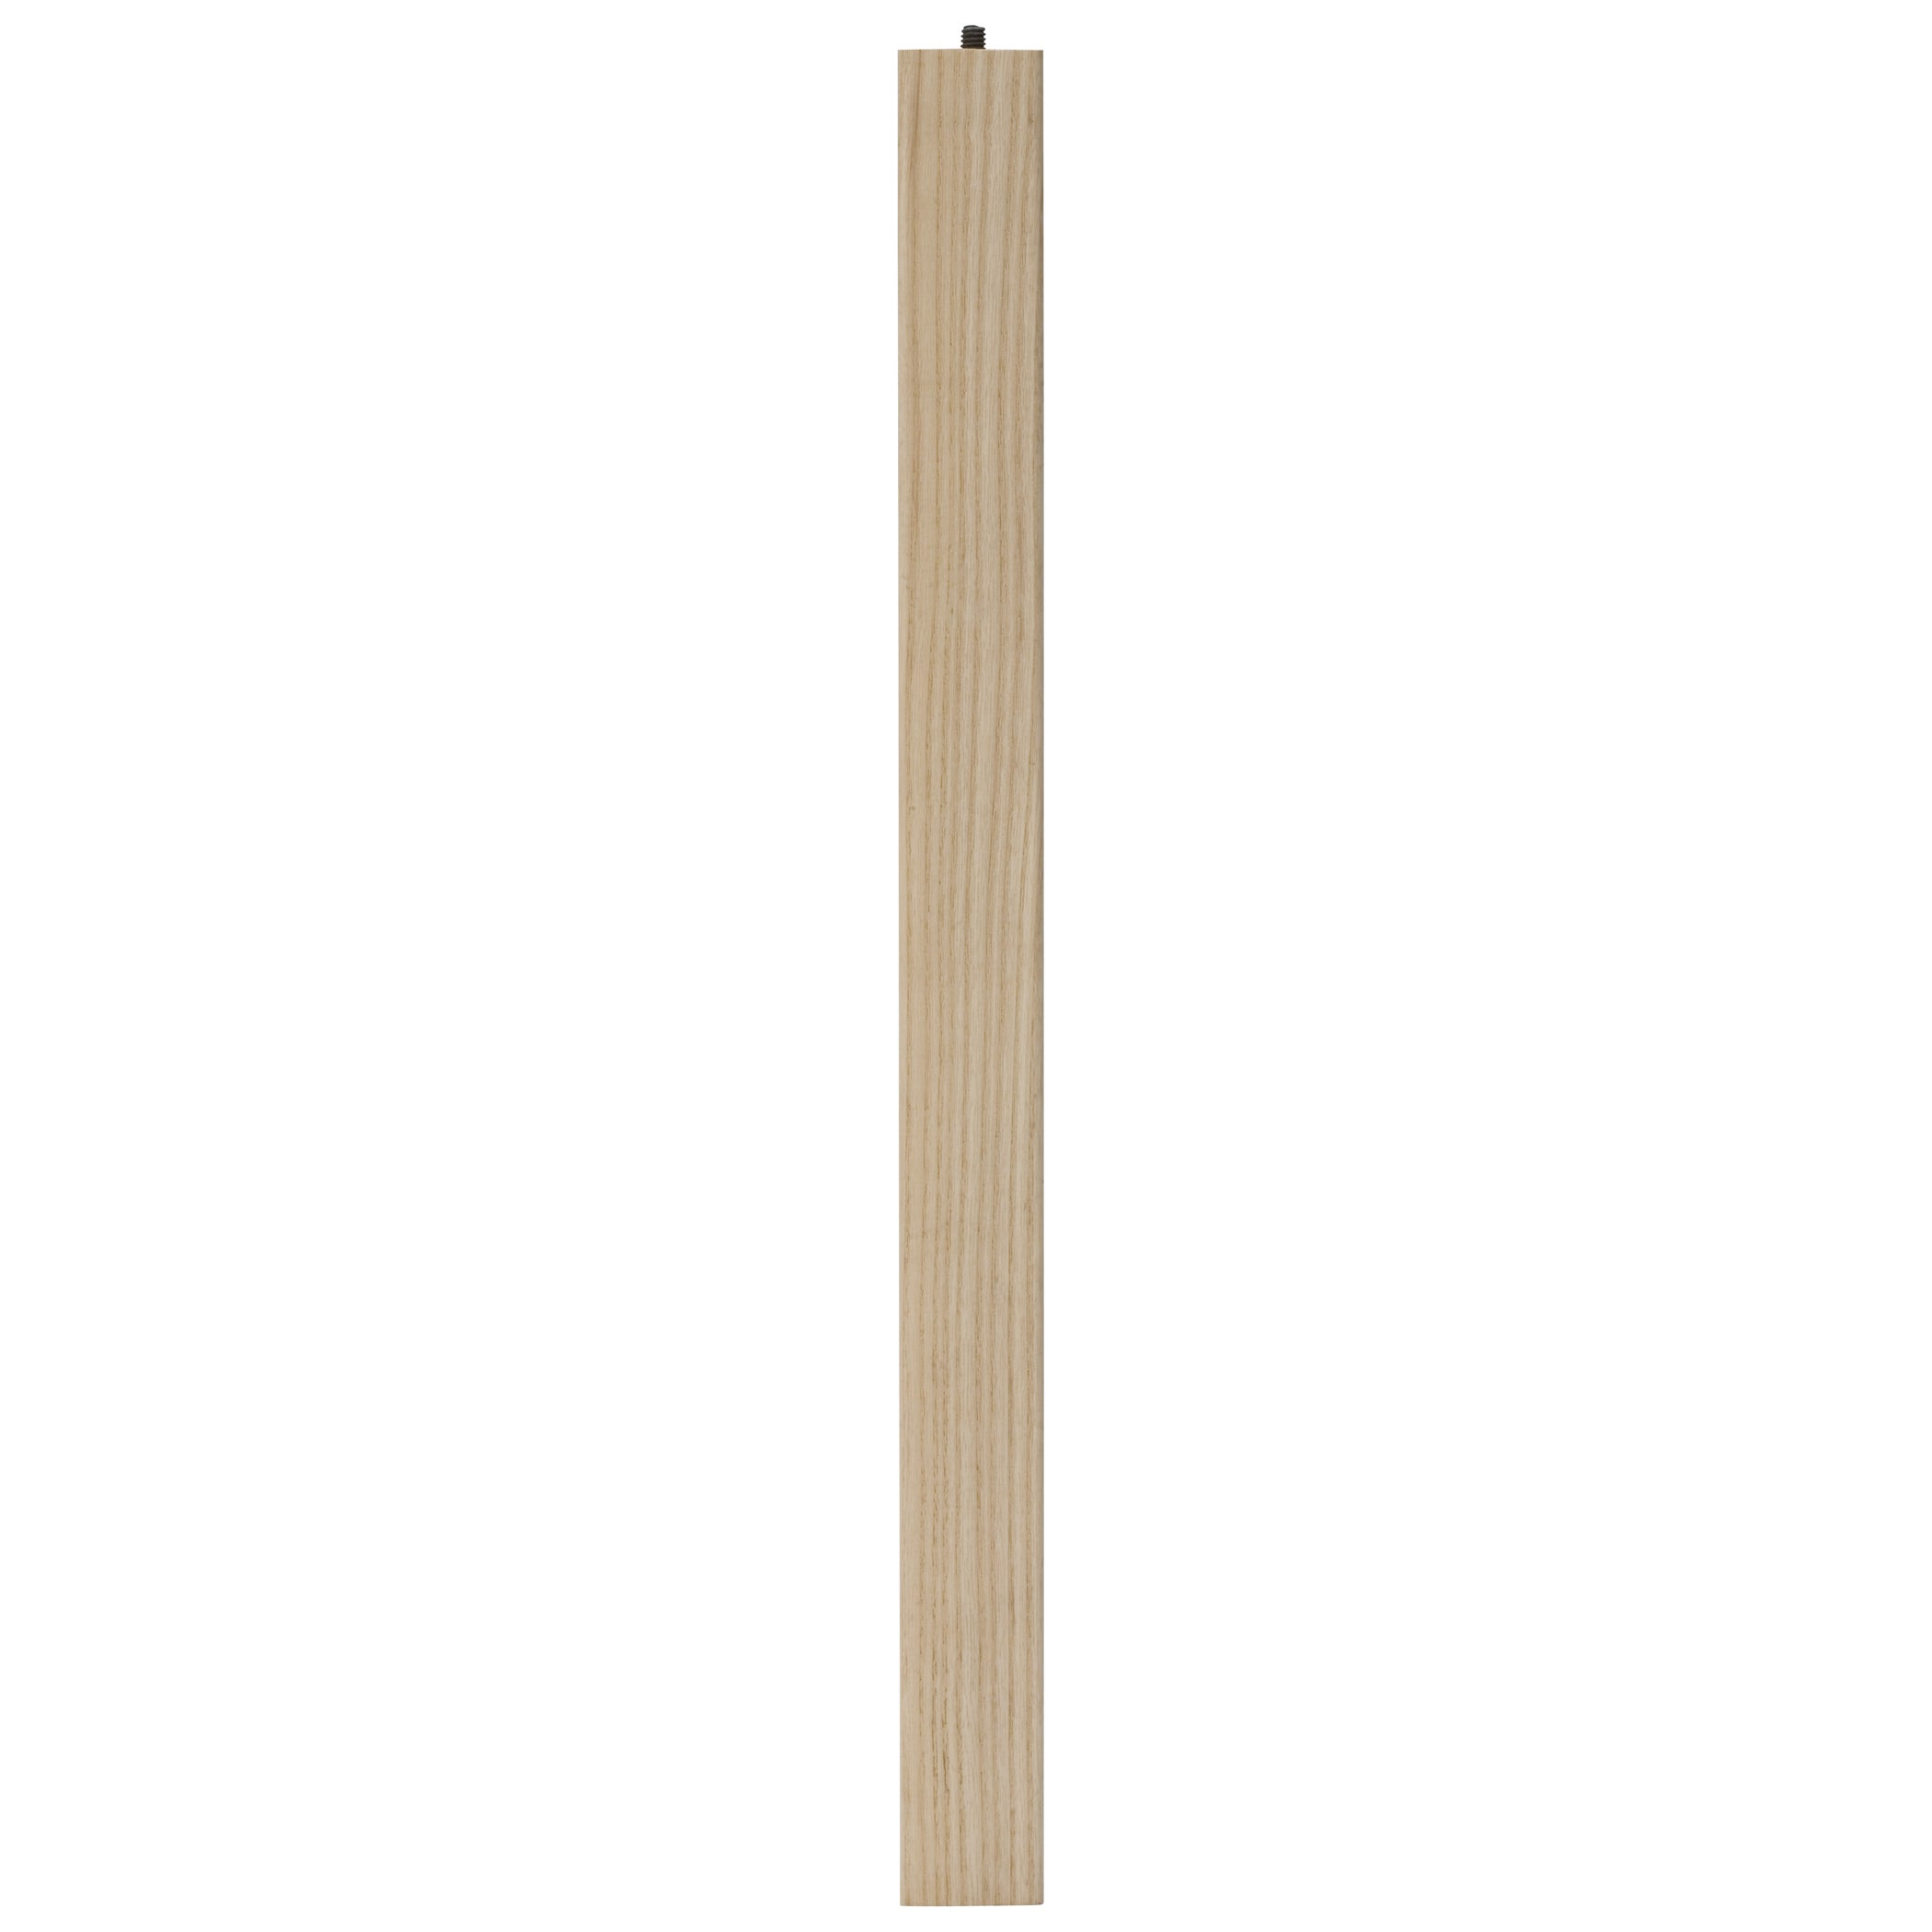 "Waddell 2671 21"" Ash (Grey) Parsons Table Leg (Hardware)"